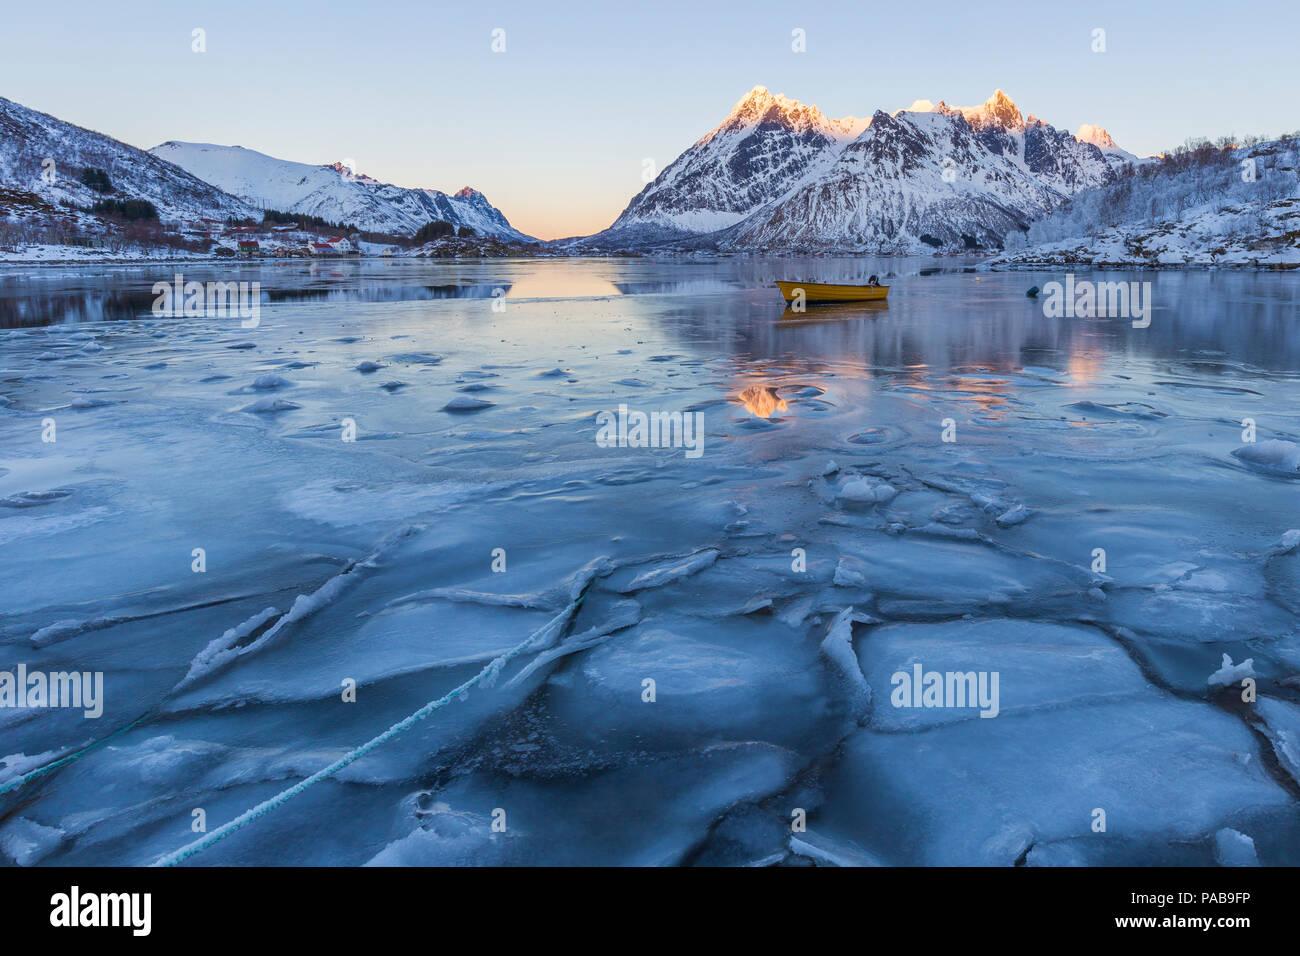 Winter scene of boat in partially frozen fjord and snowy landscape. Blue ice and water cast reflections of mountain peaks in orange sunset. - Stock Image